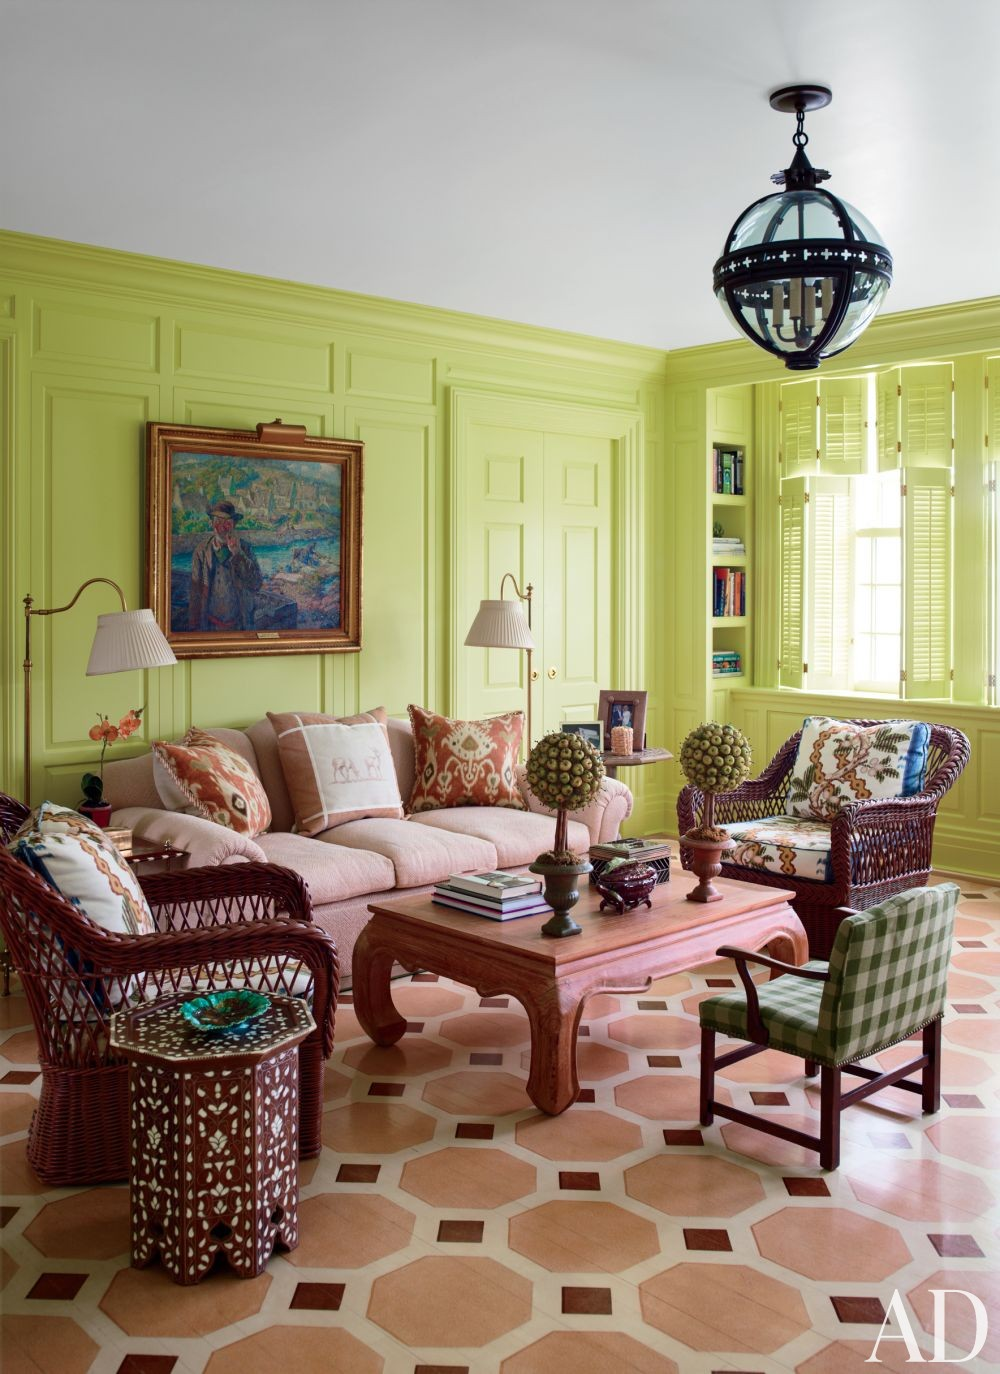 Traditional Living Room by Mario Buatta and Muse Architecture in Southampton, New York